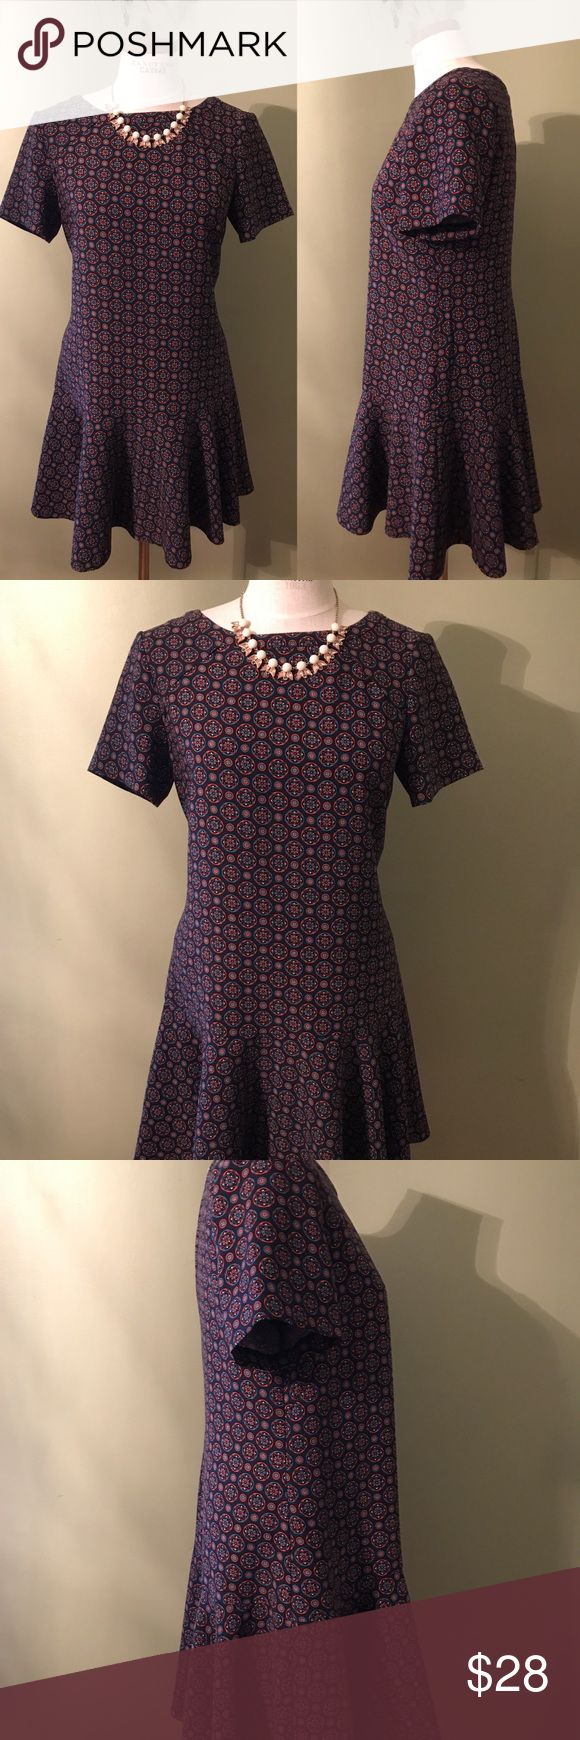 Banana Republic, US12P, professional dress Banana Republic work dress, navy blue with red/orange, light blue, white circle star patterns. Short sleeves, straight dress with peplum bottom. Great with tights and short boots for a spring meeting! Throw on an jacket and necklace for a fall night out! Banana Republic Dresses Midi